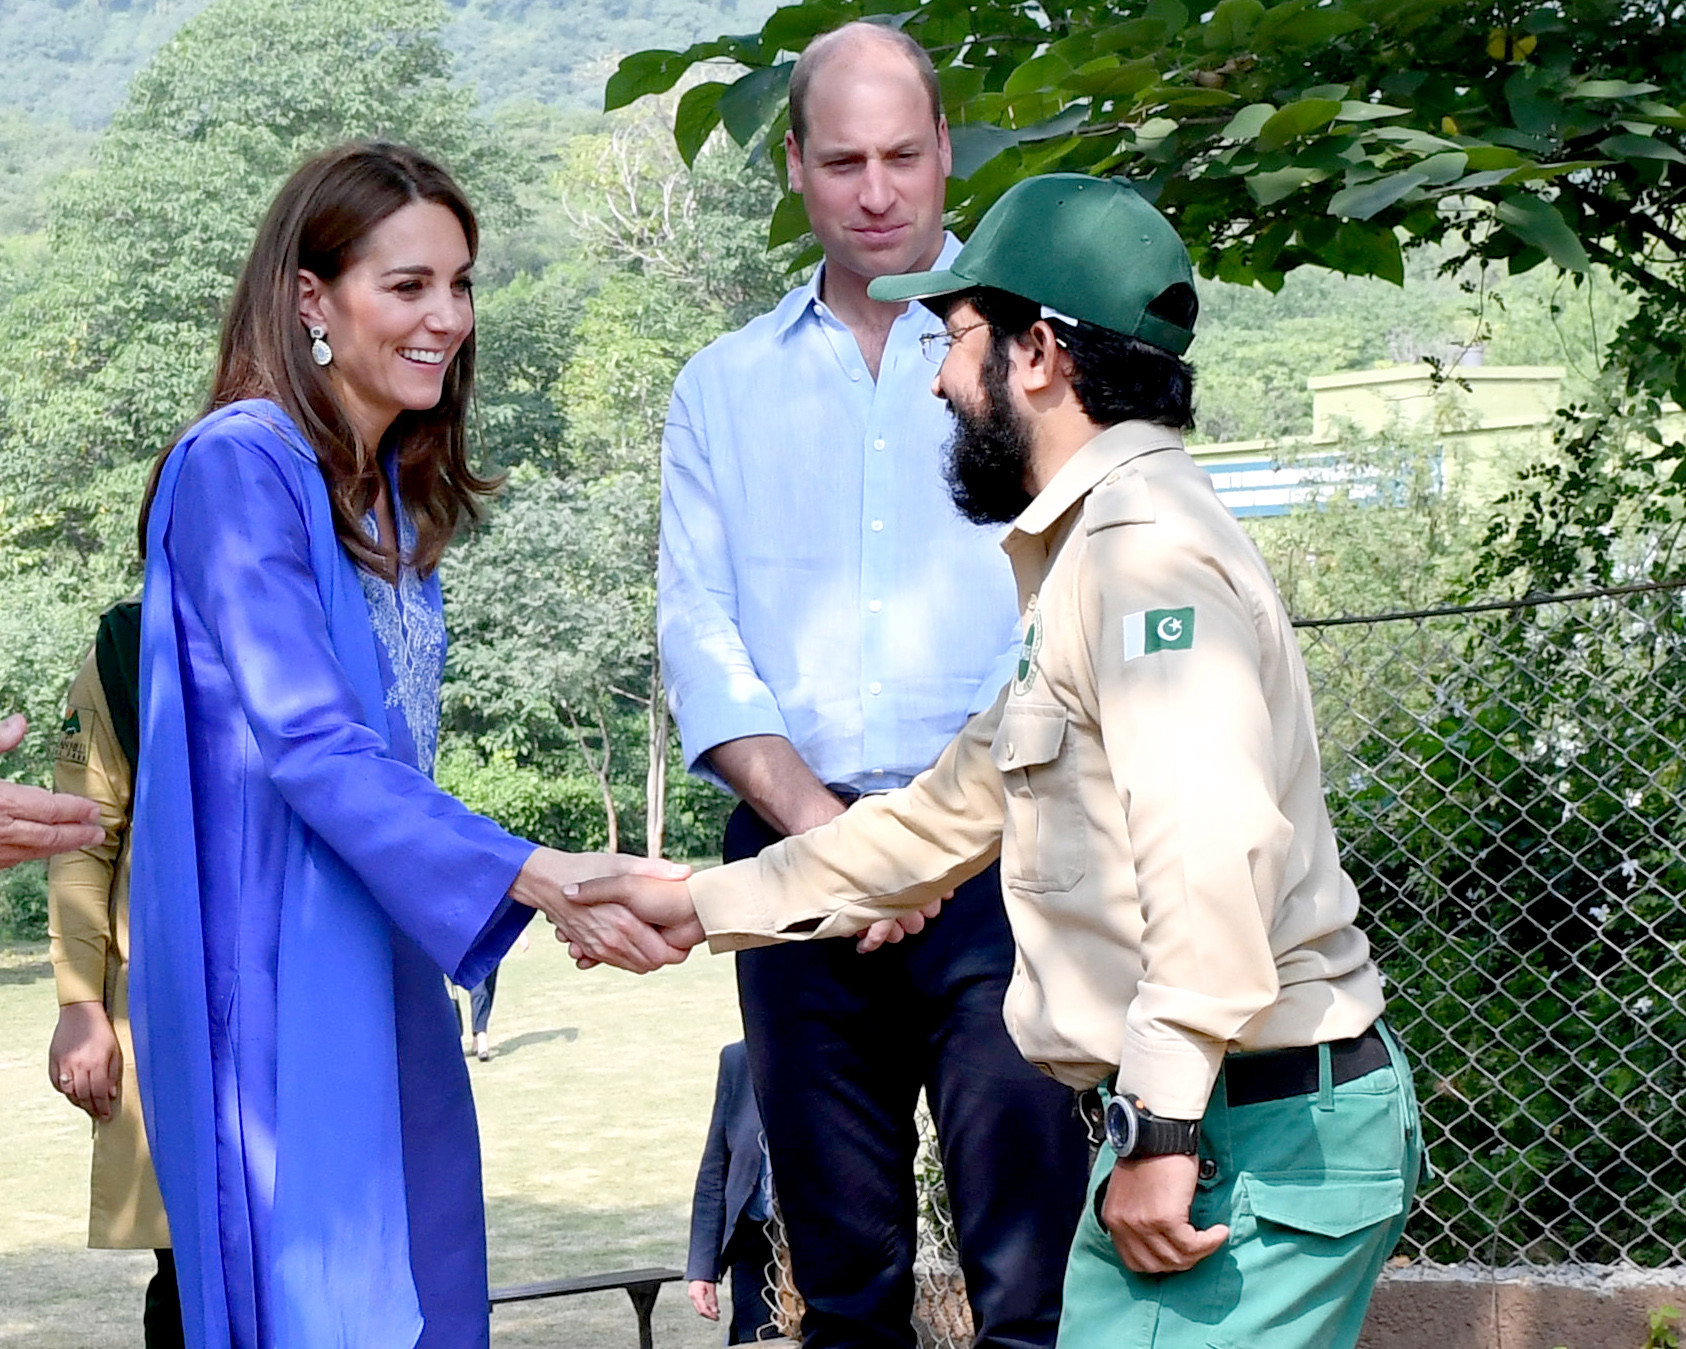 Kate shakes hands with a ranger